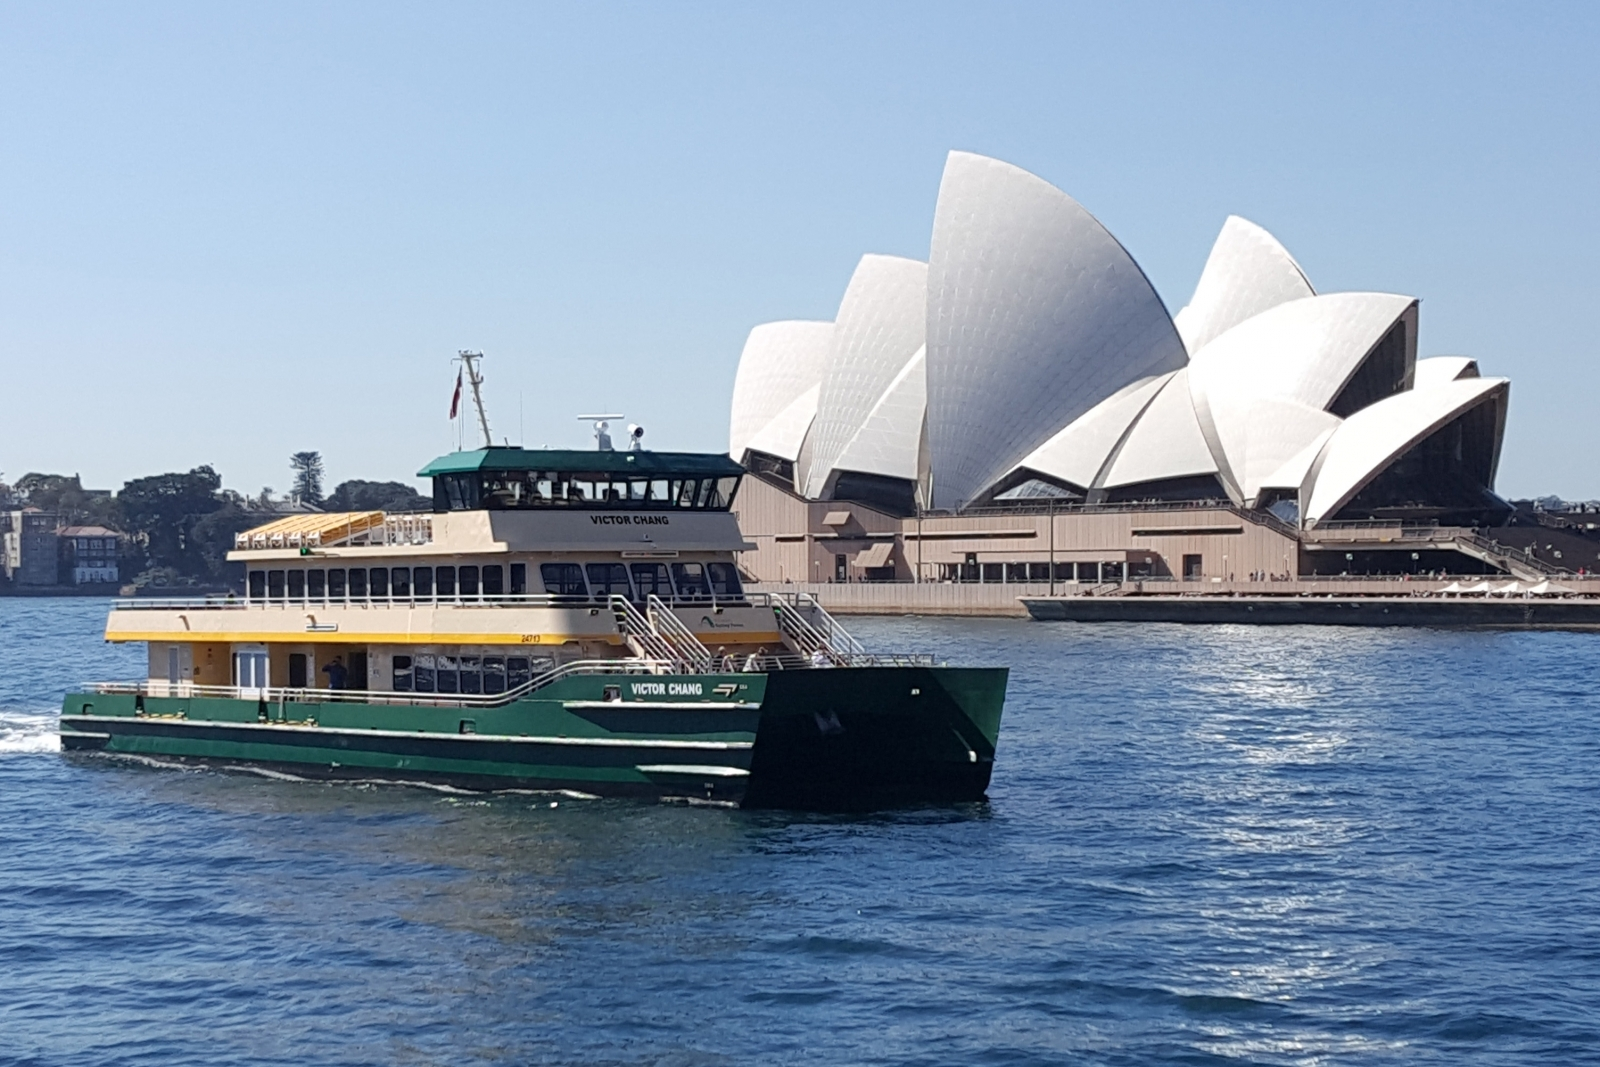 Sydney harbour ferry named 'Ferry McFerryface' after public vote